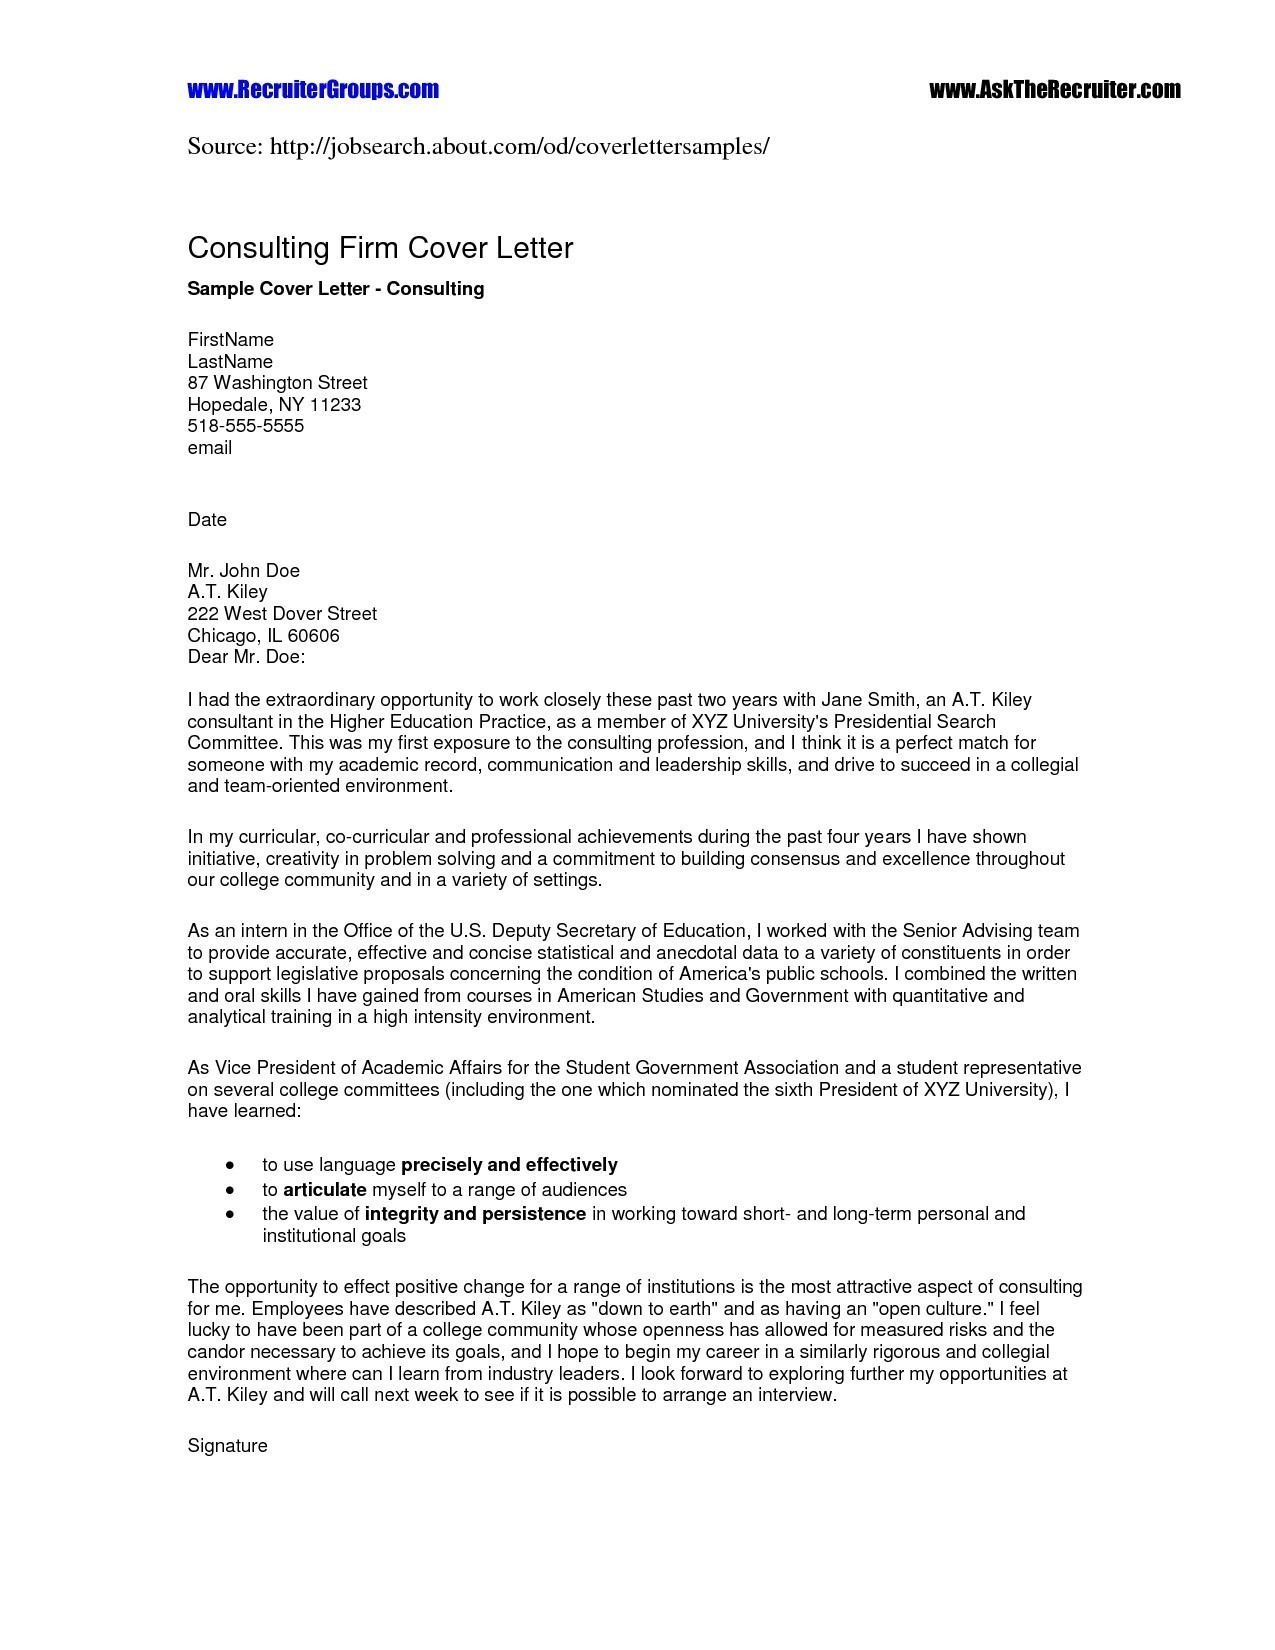 Maintenance Technician Cover Letter Sample 5 Simple